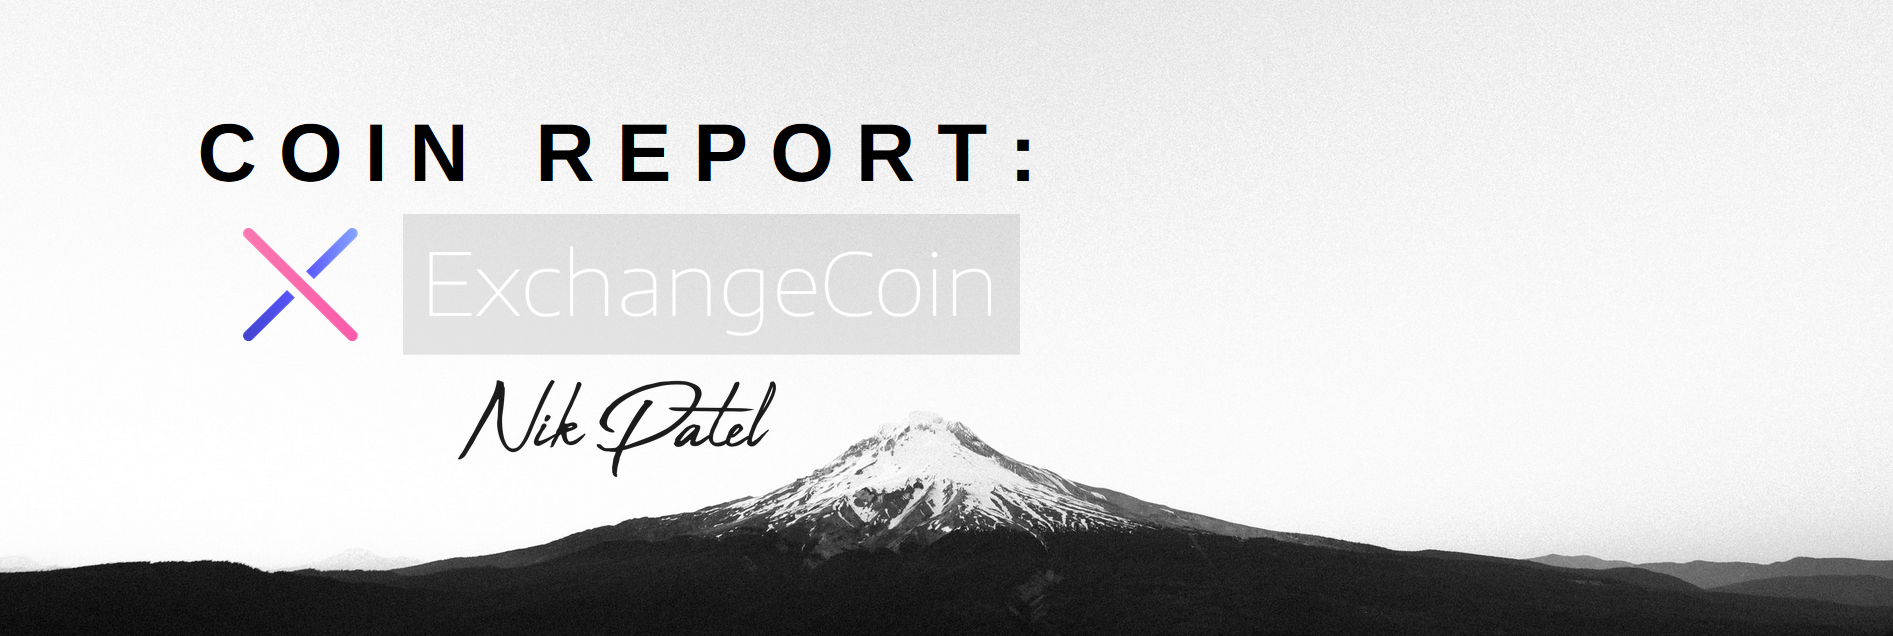 Coin Report #32: ExchangeCoin